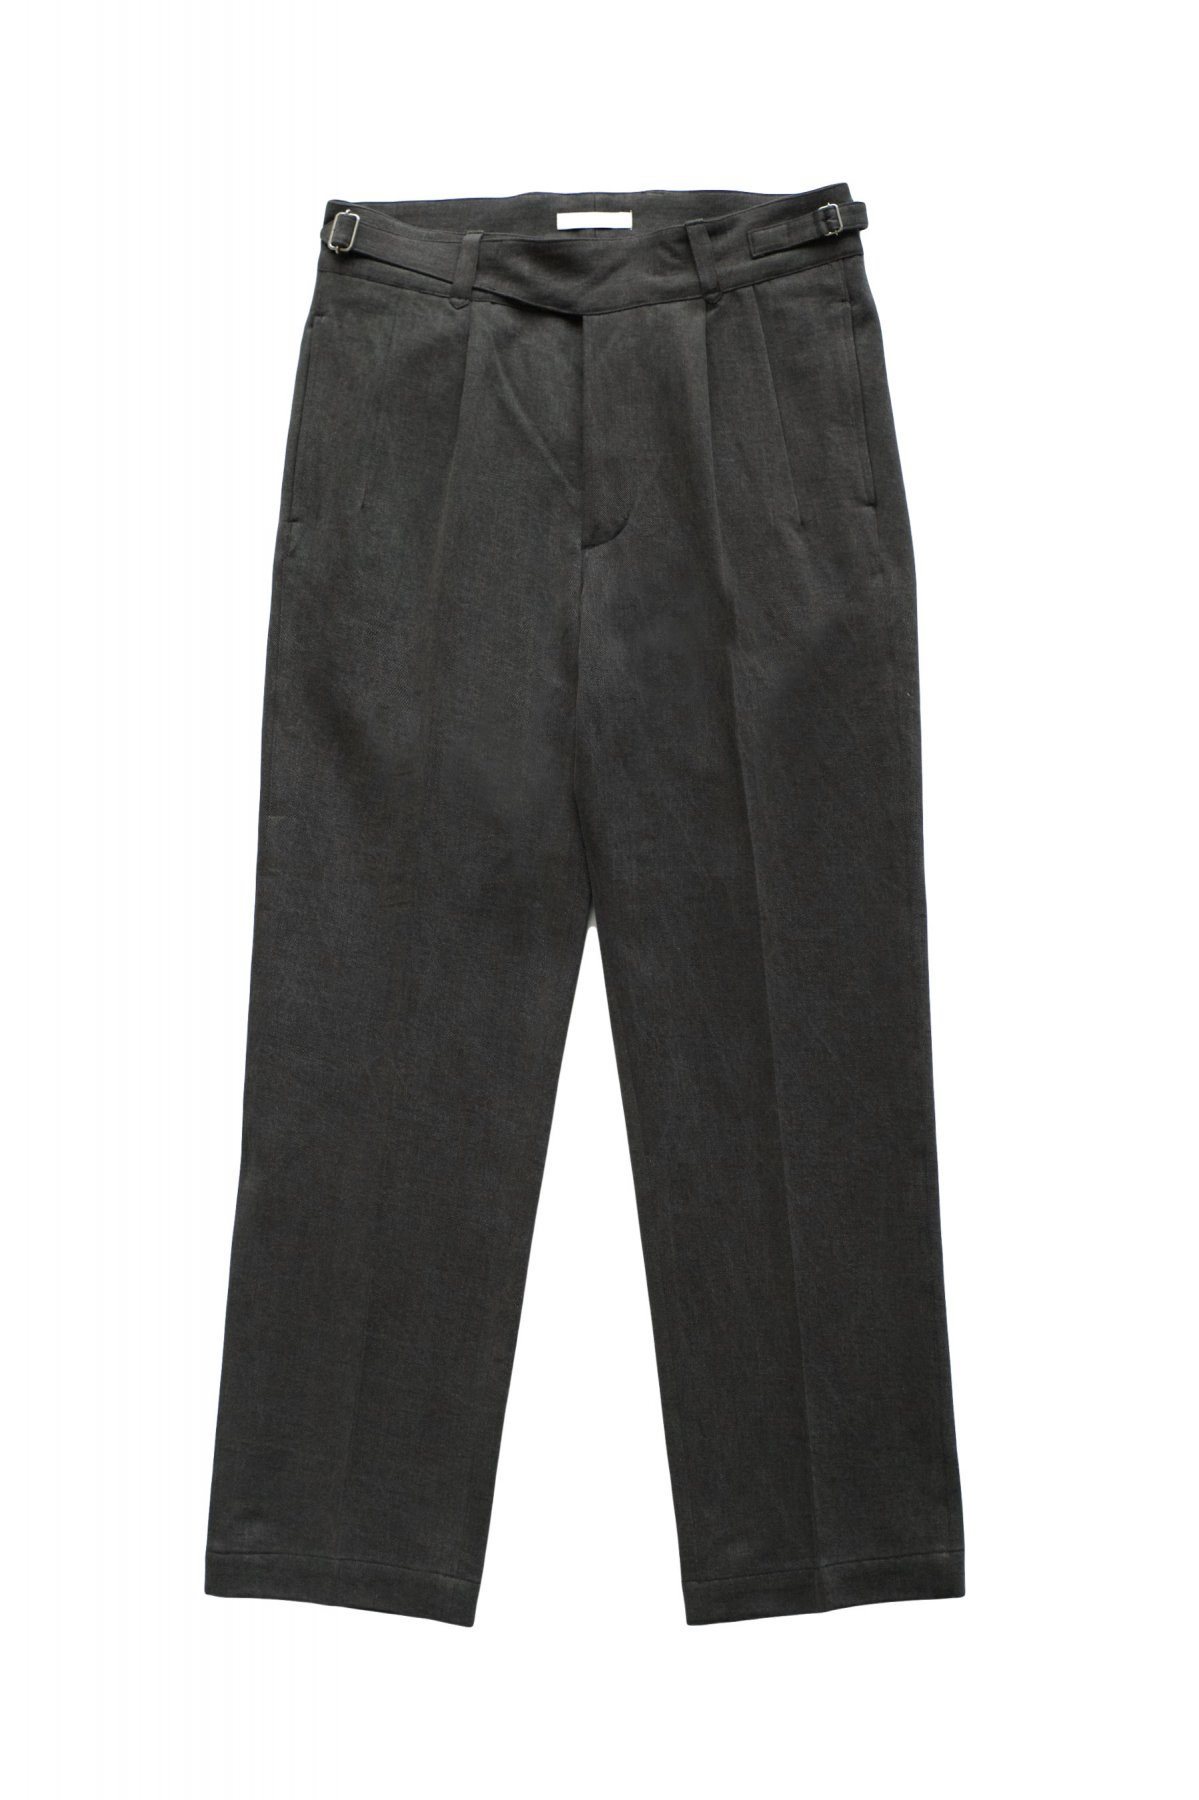 OLD JOE - SIDE BUCKLE GRUKHA TROUSER